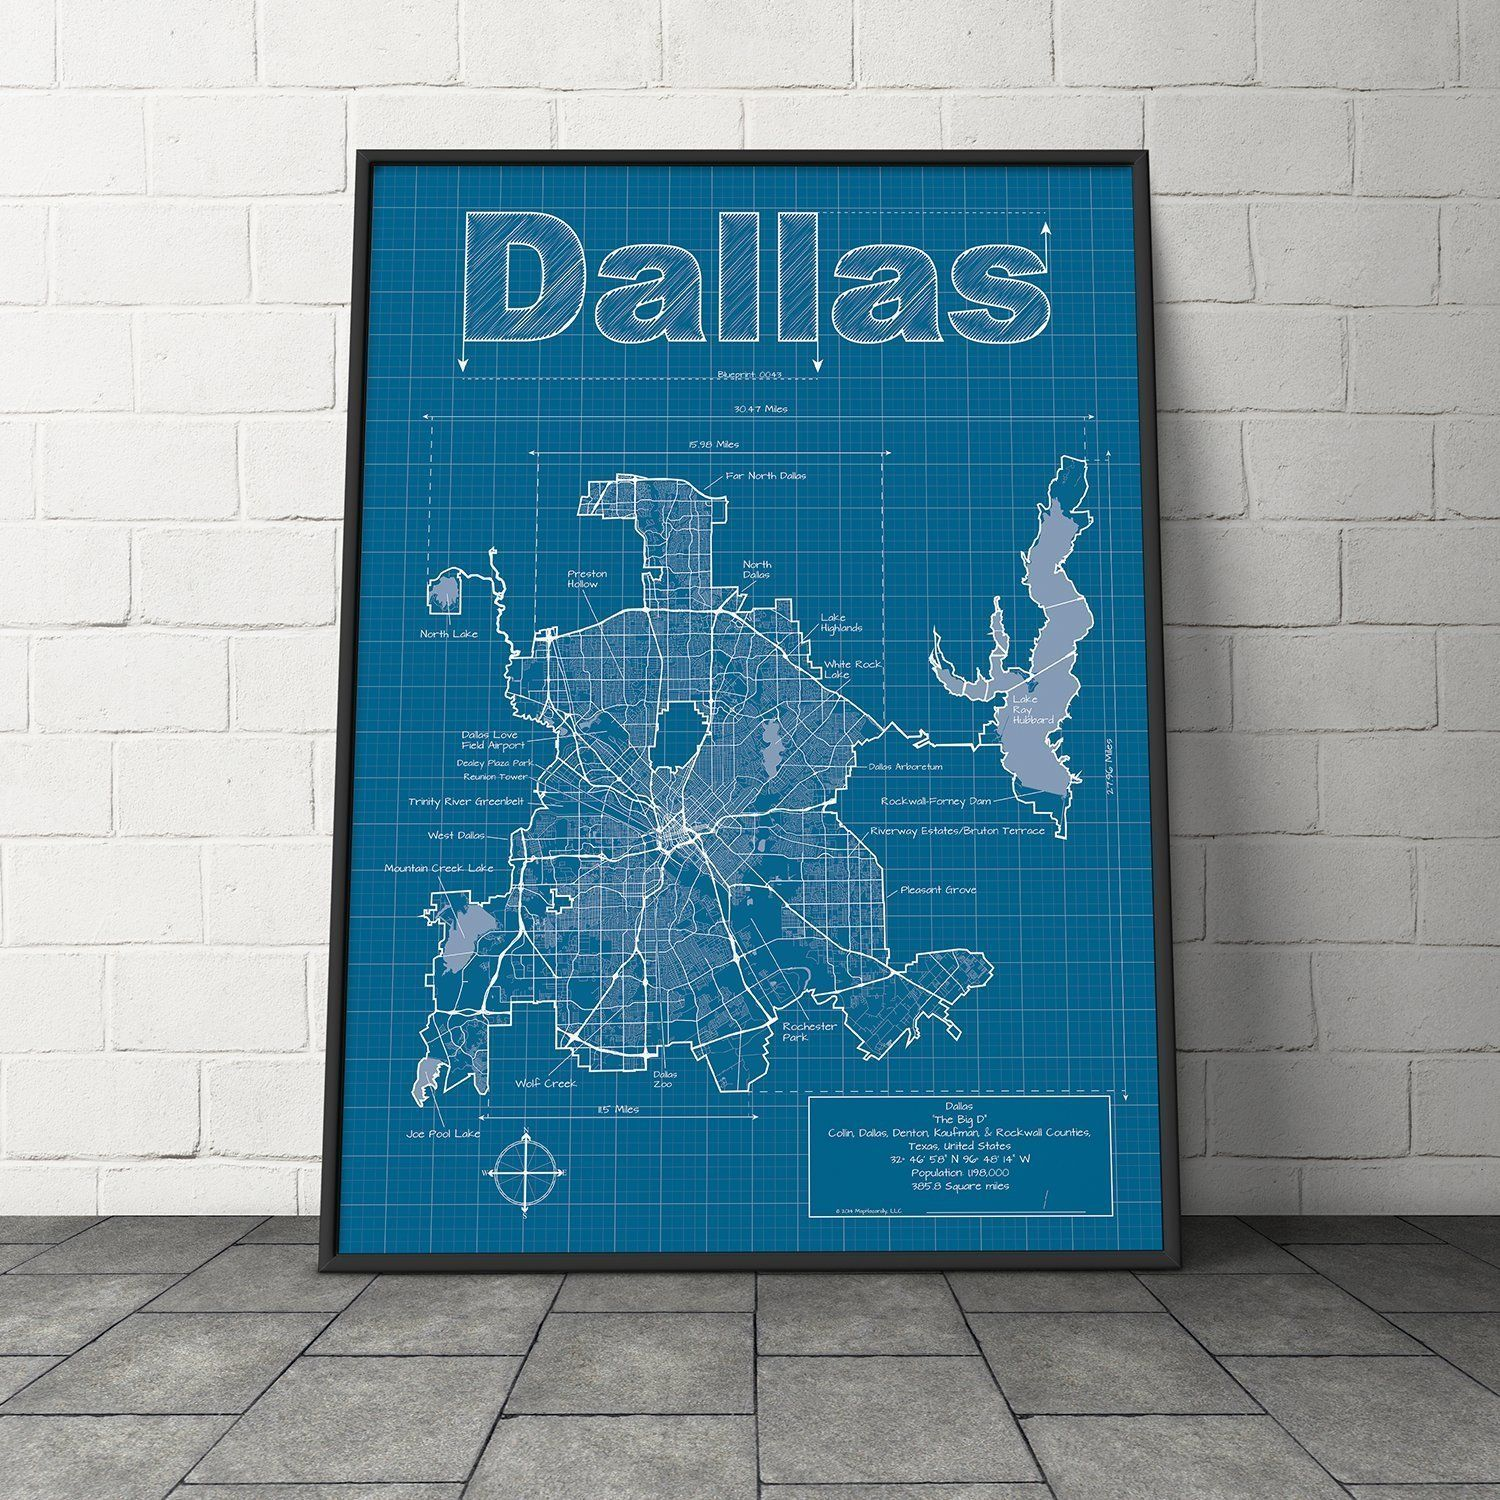 Dallas texas map blueprint style modern graphic design and dallas texas map blueprint style modern graphic design and traditional blueprint style come malvernweather Choice Image